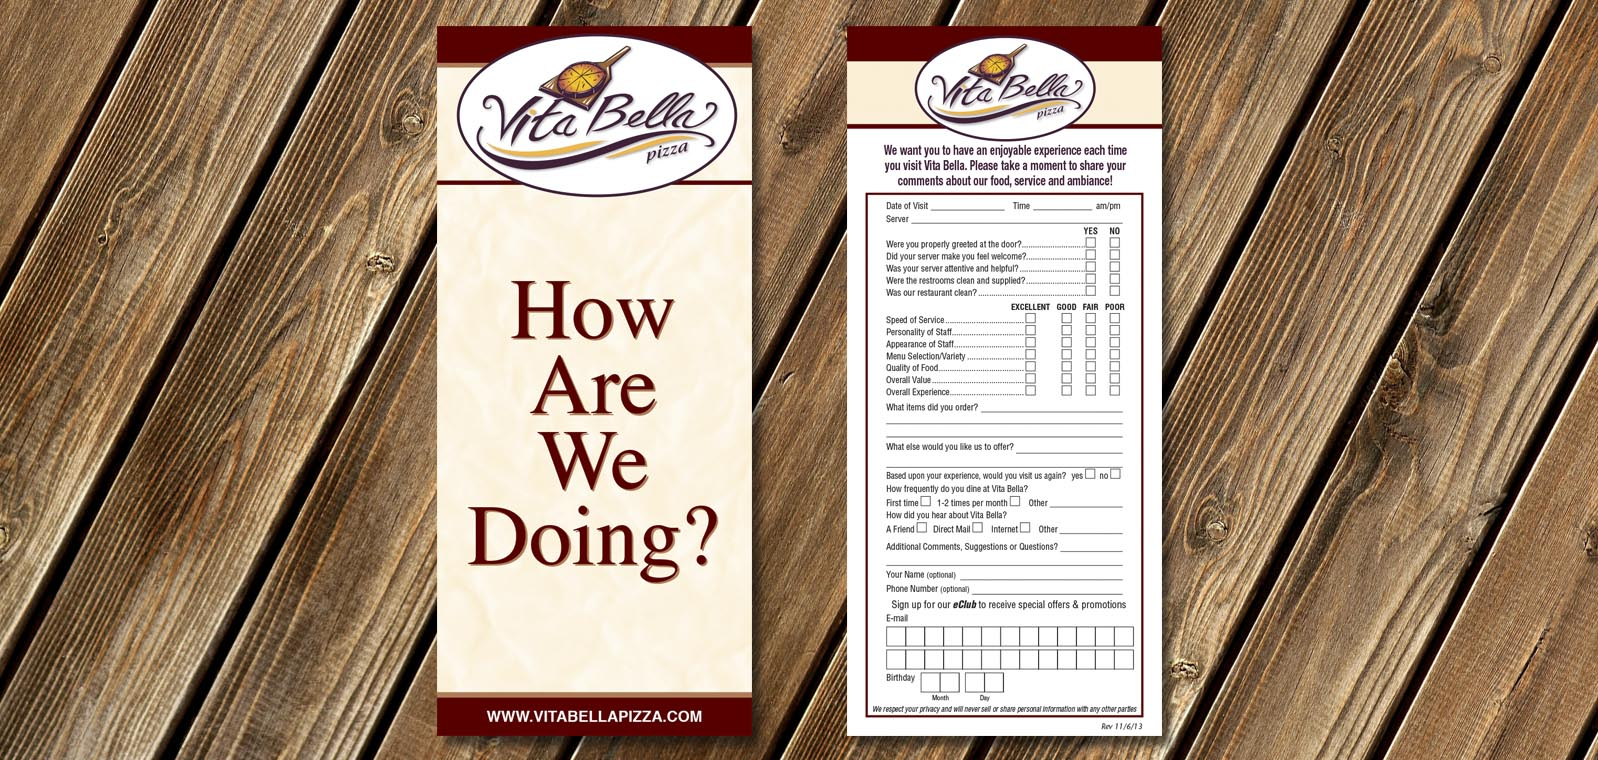 Comment Card Graphic Design for Vita Bella Pizza, by Roselle Graphic Designer Controlled Color, Inc.